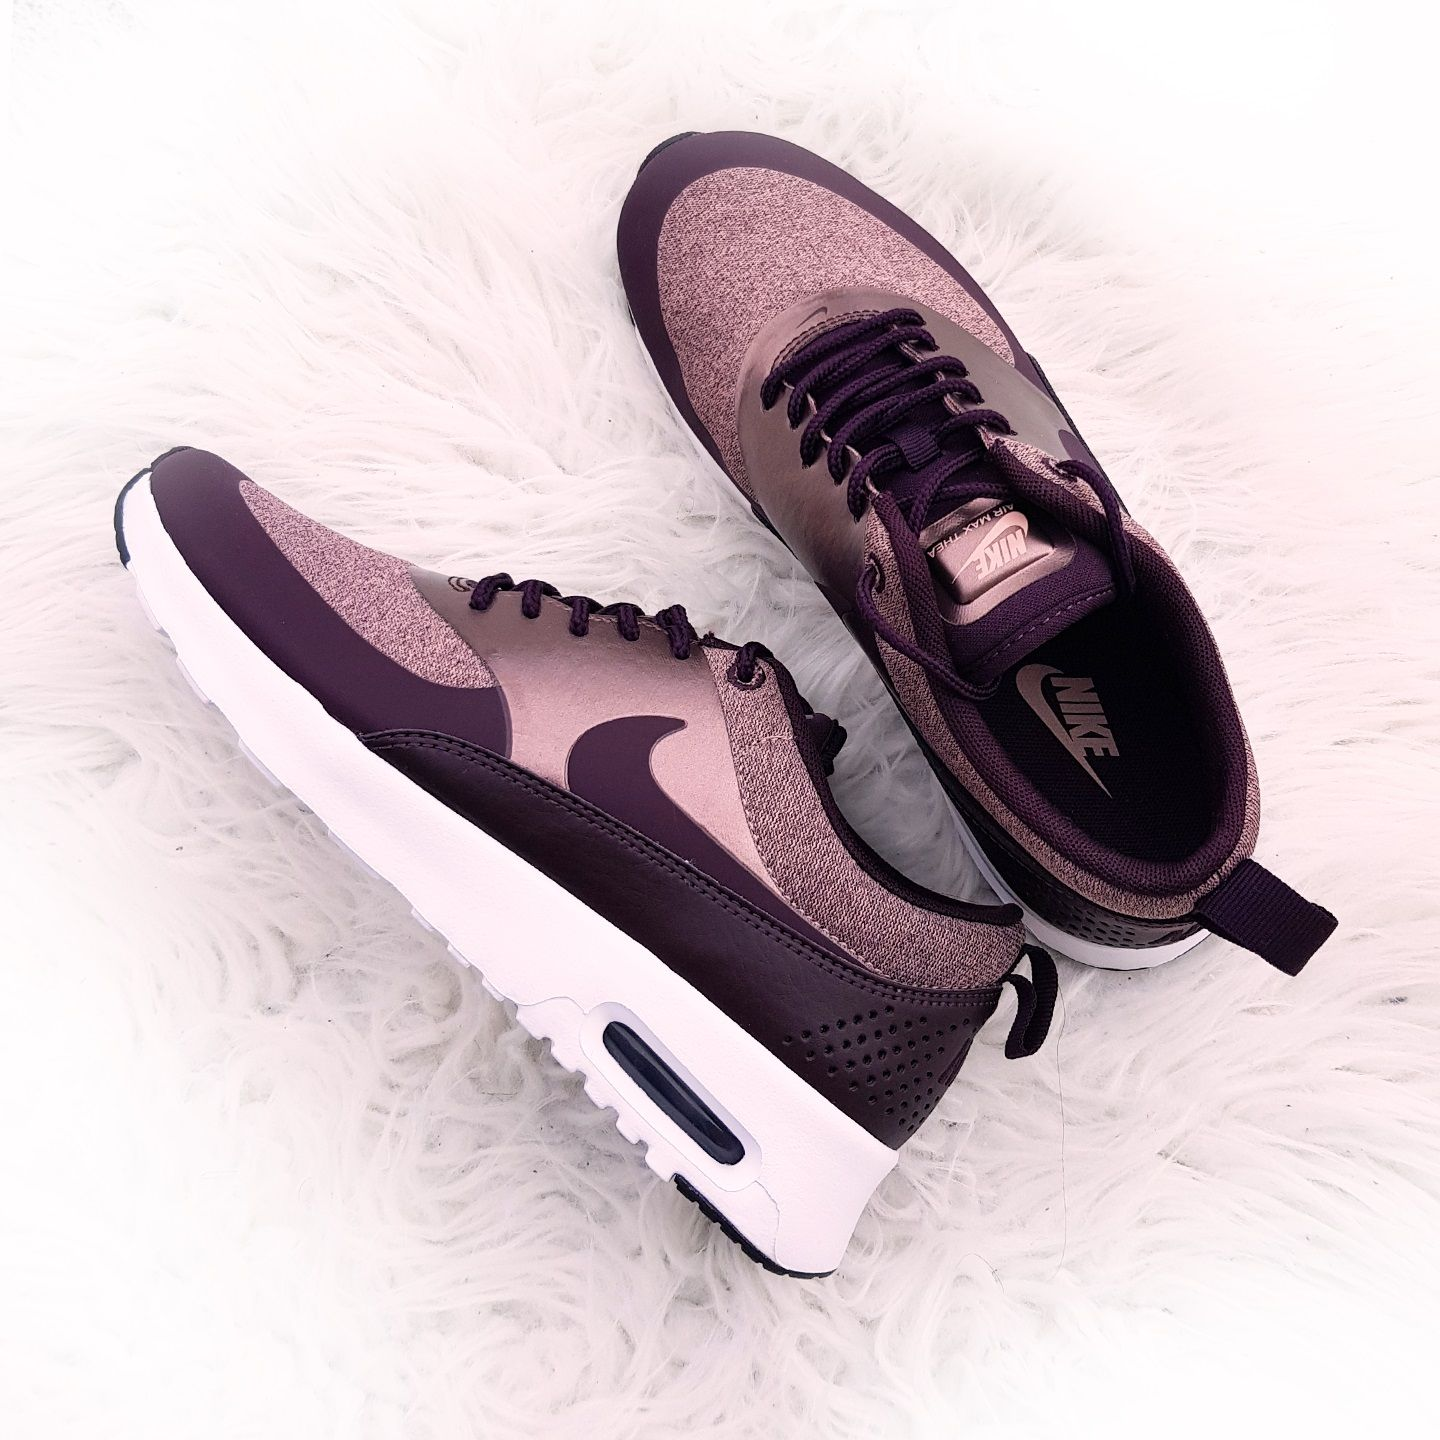 59d60fc3bc5655 Nike Air Max Thea Knit - Port Wine Particle Pink Schwarz Metallic Mahogany